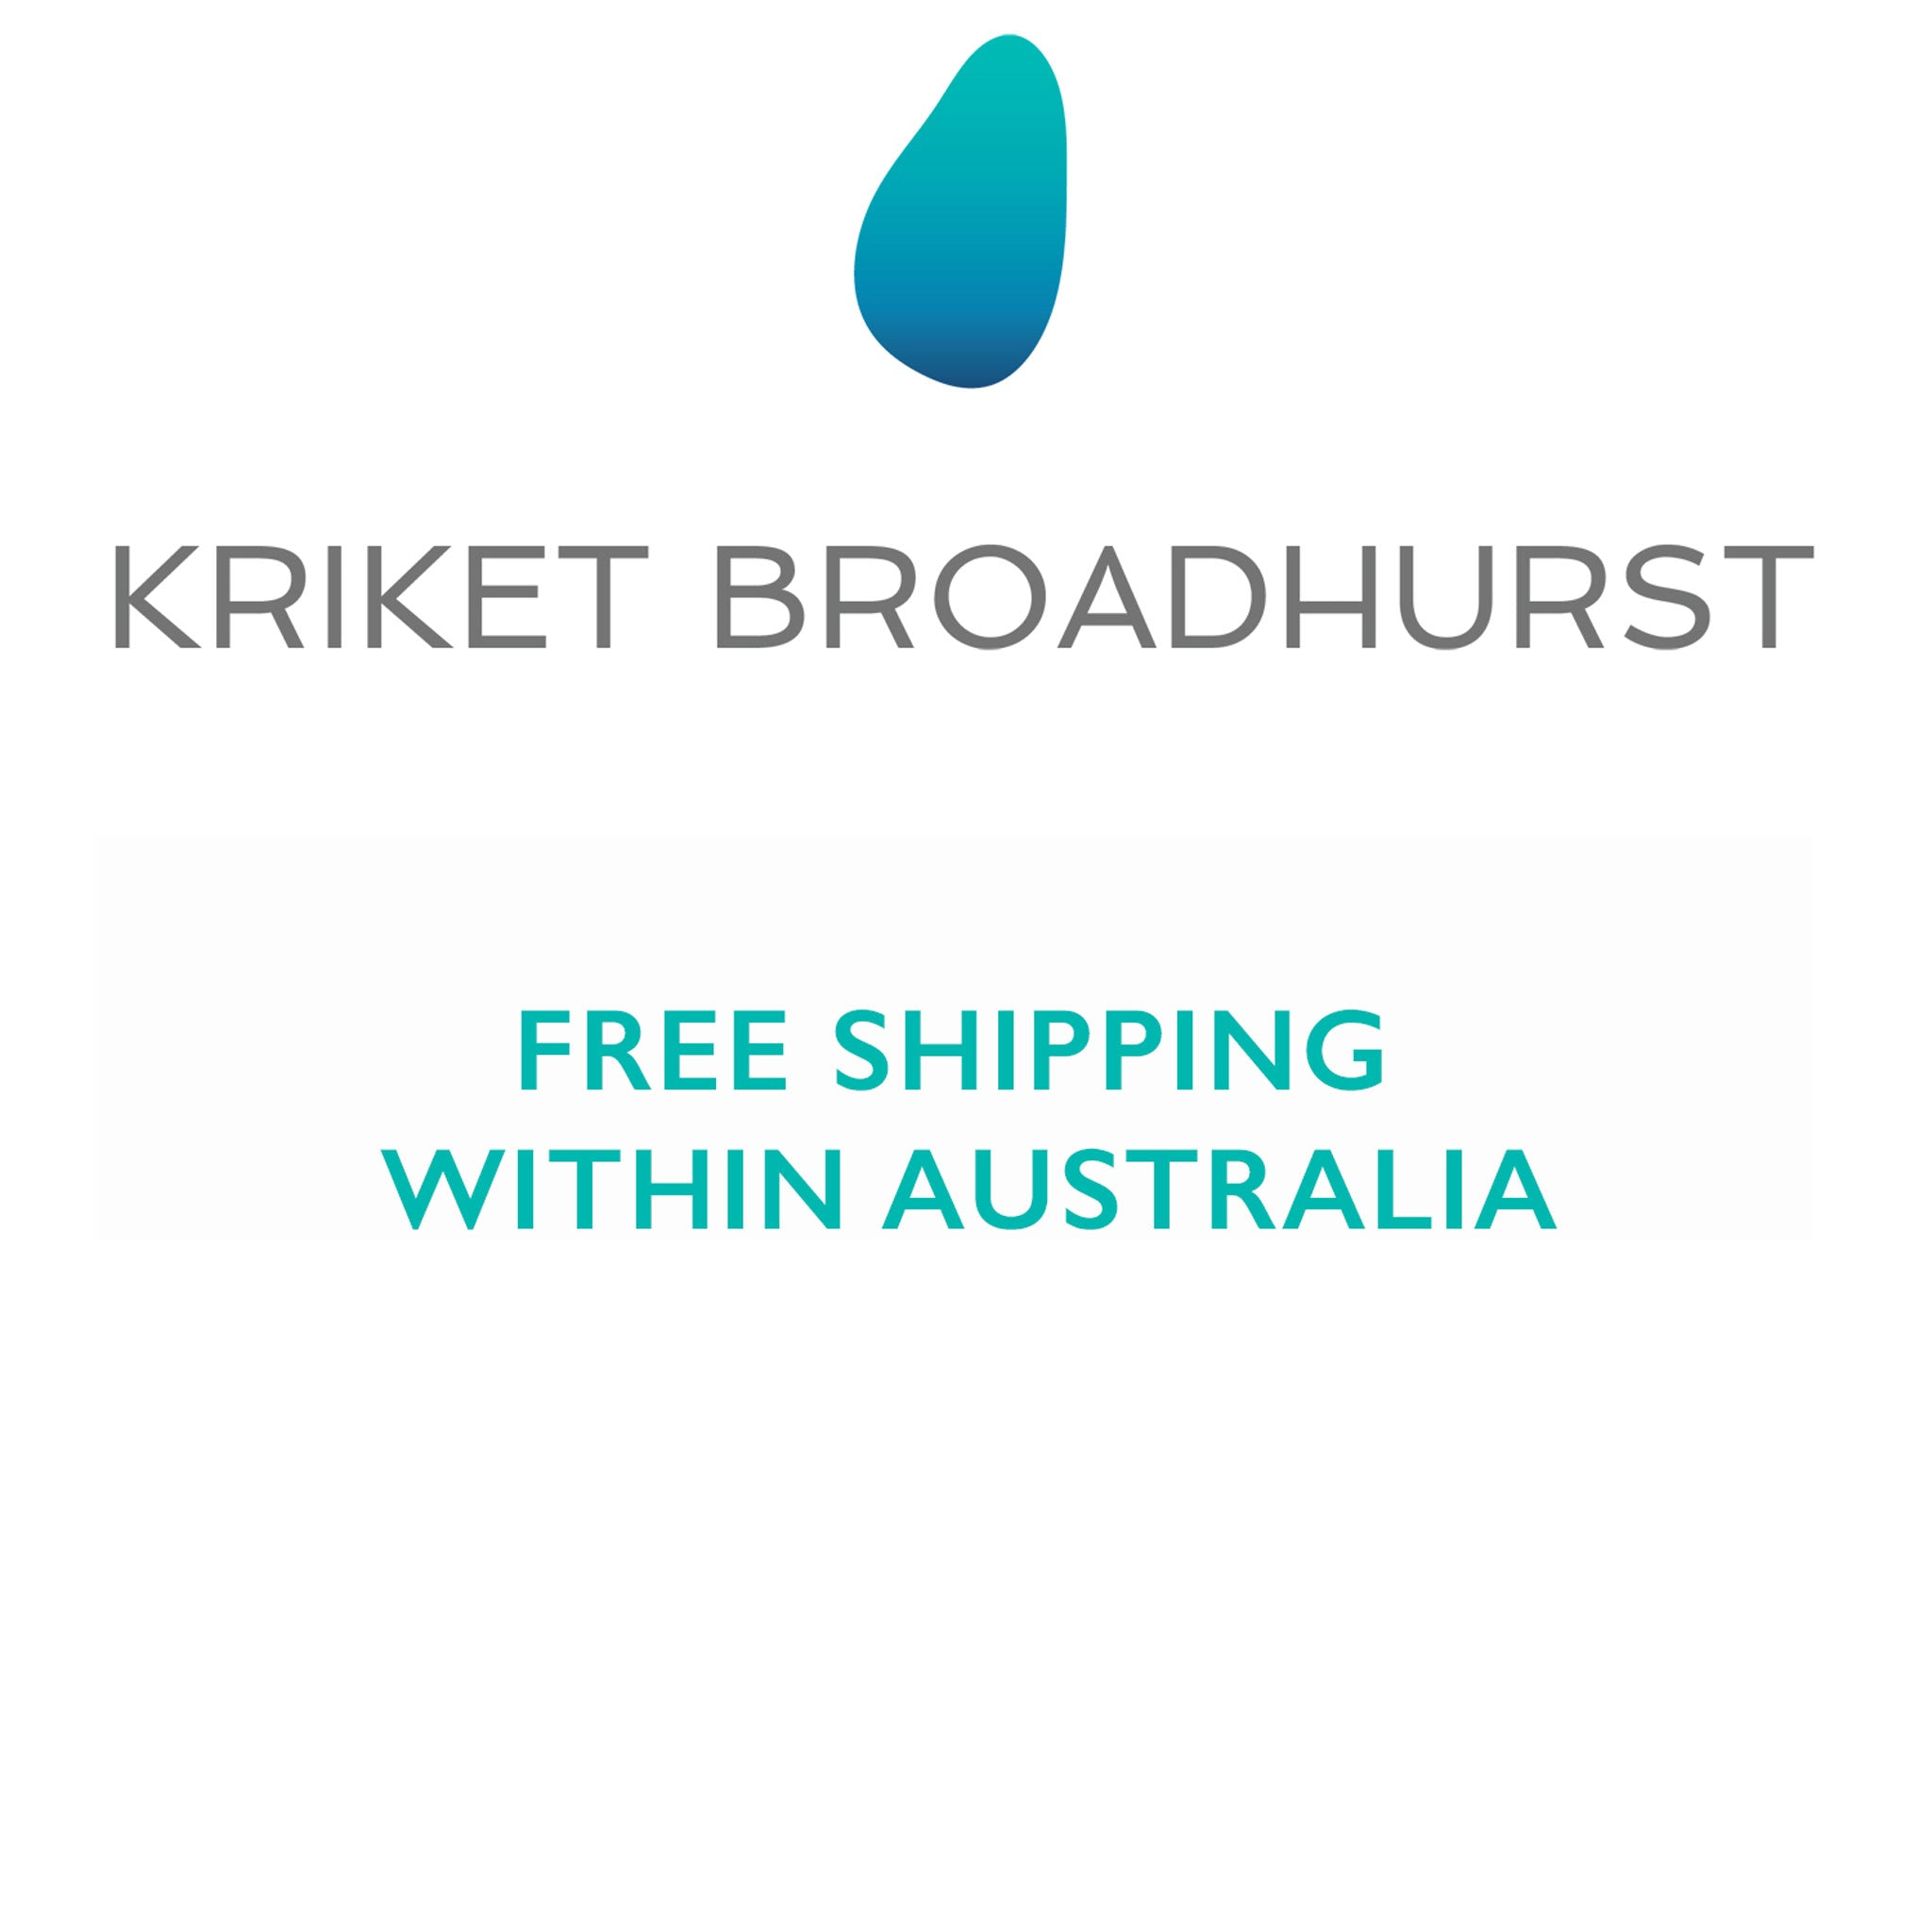 Kriket Broadhurst jewellery gifts for women Sydney free shipping Australia